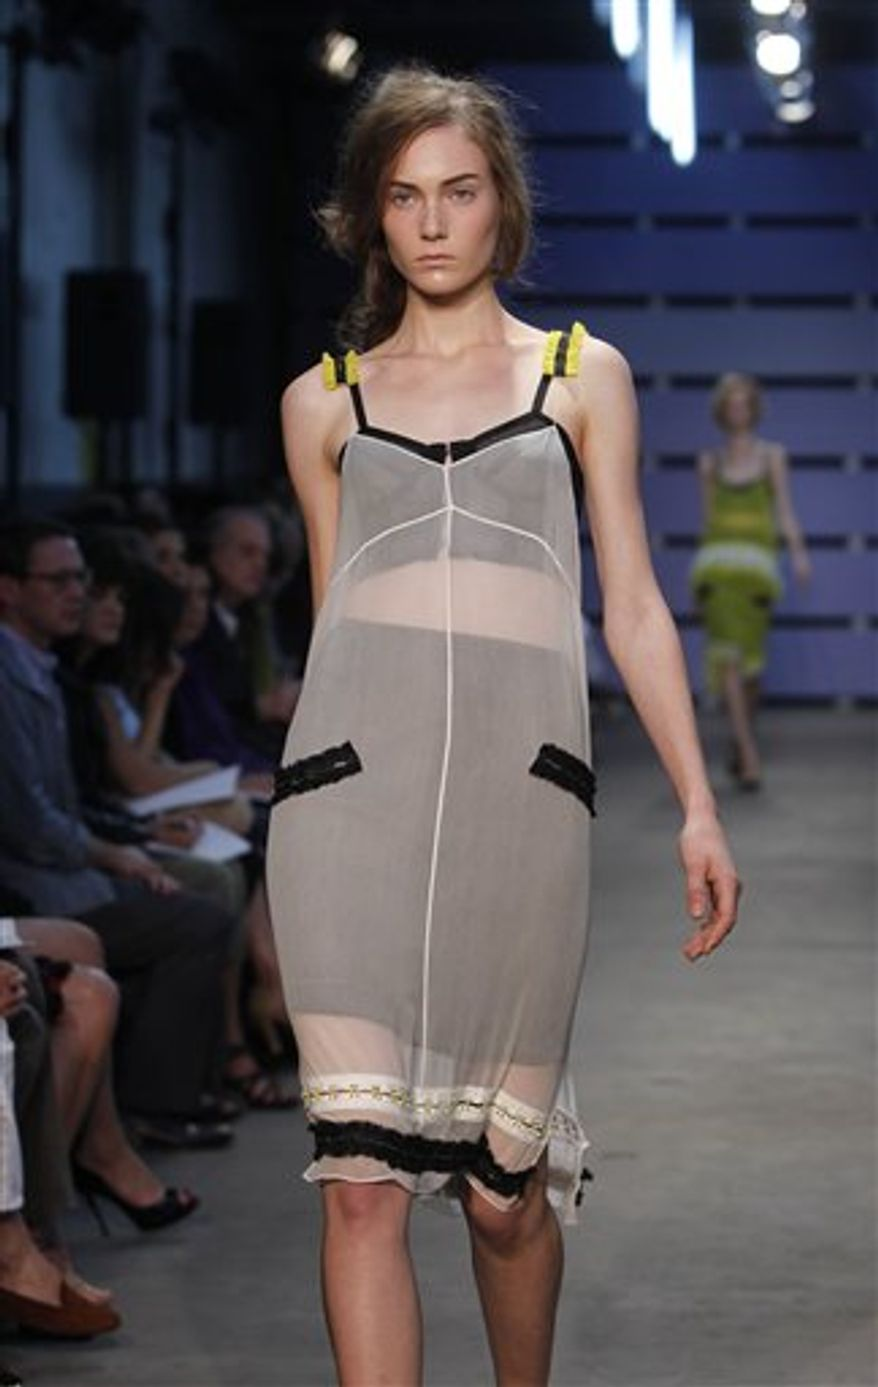 The Proenza Schouler spring 2011 collection is modeled during Fashion Week in New York, Wednesday, Sept. 15, 2010.  (AP Photo/Seth Wenig)